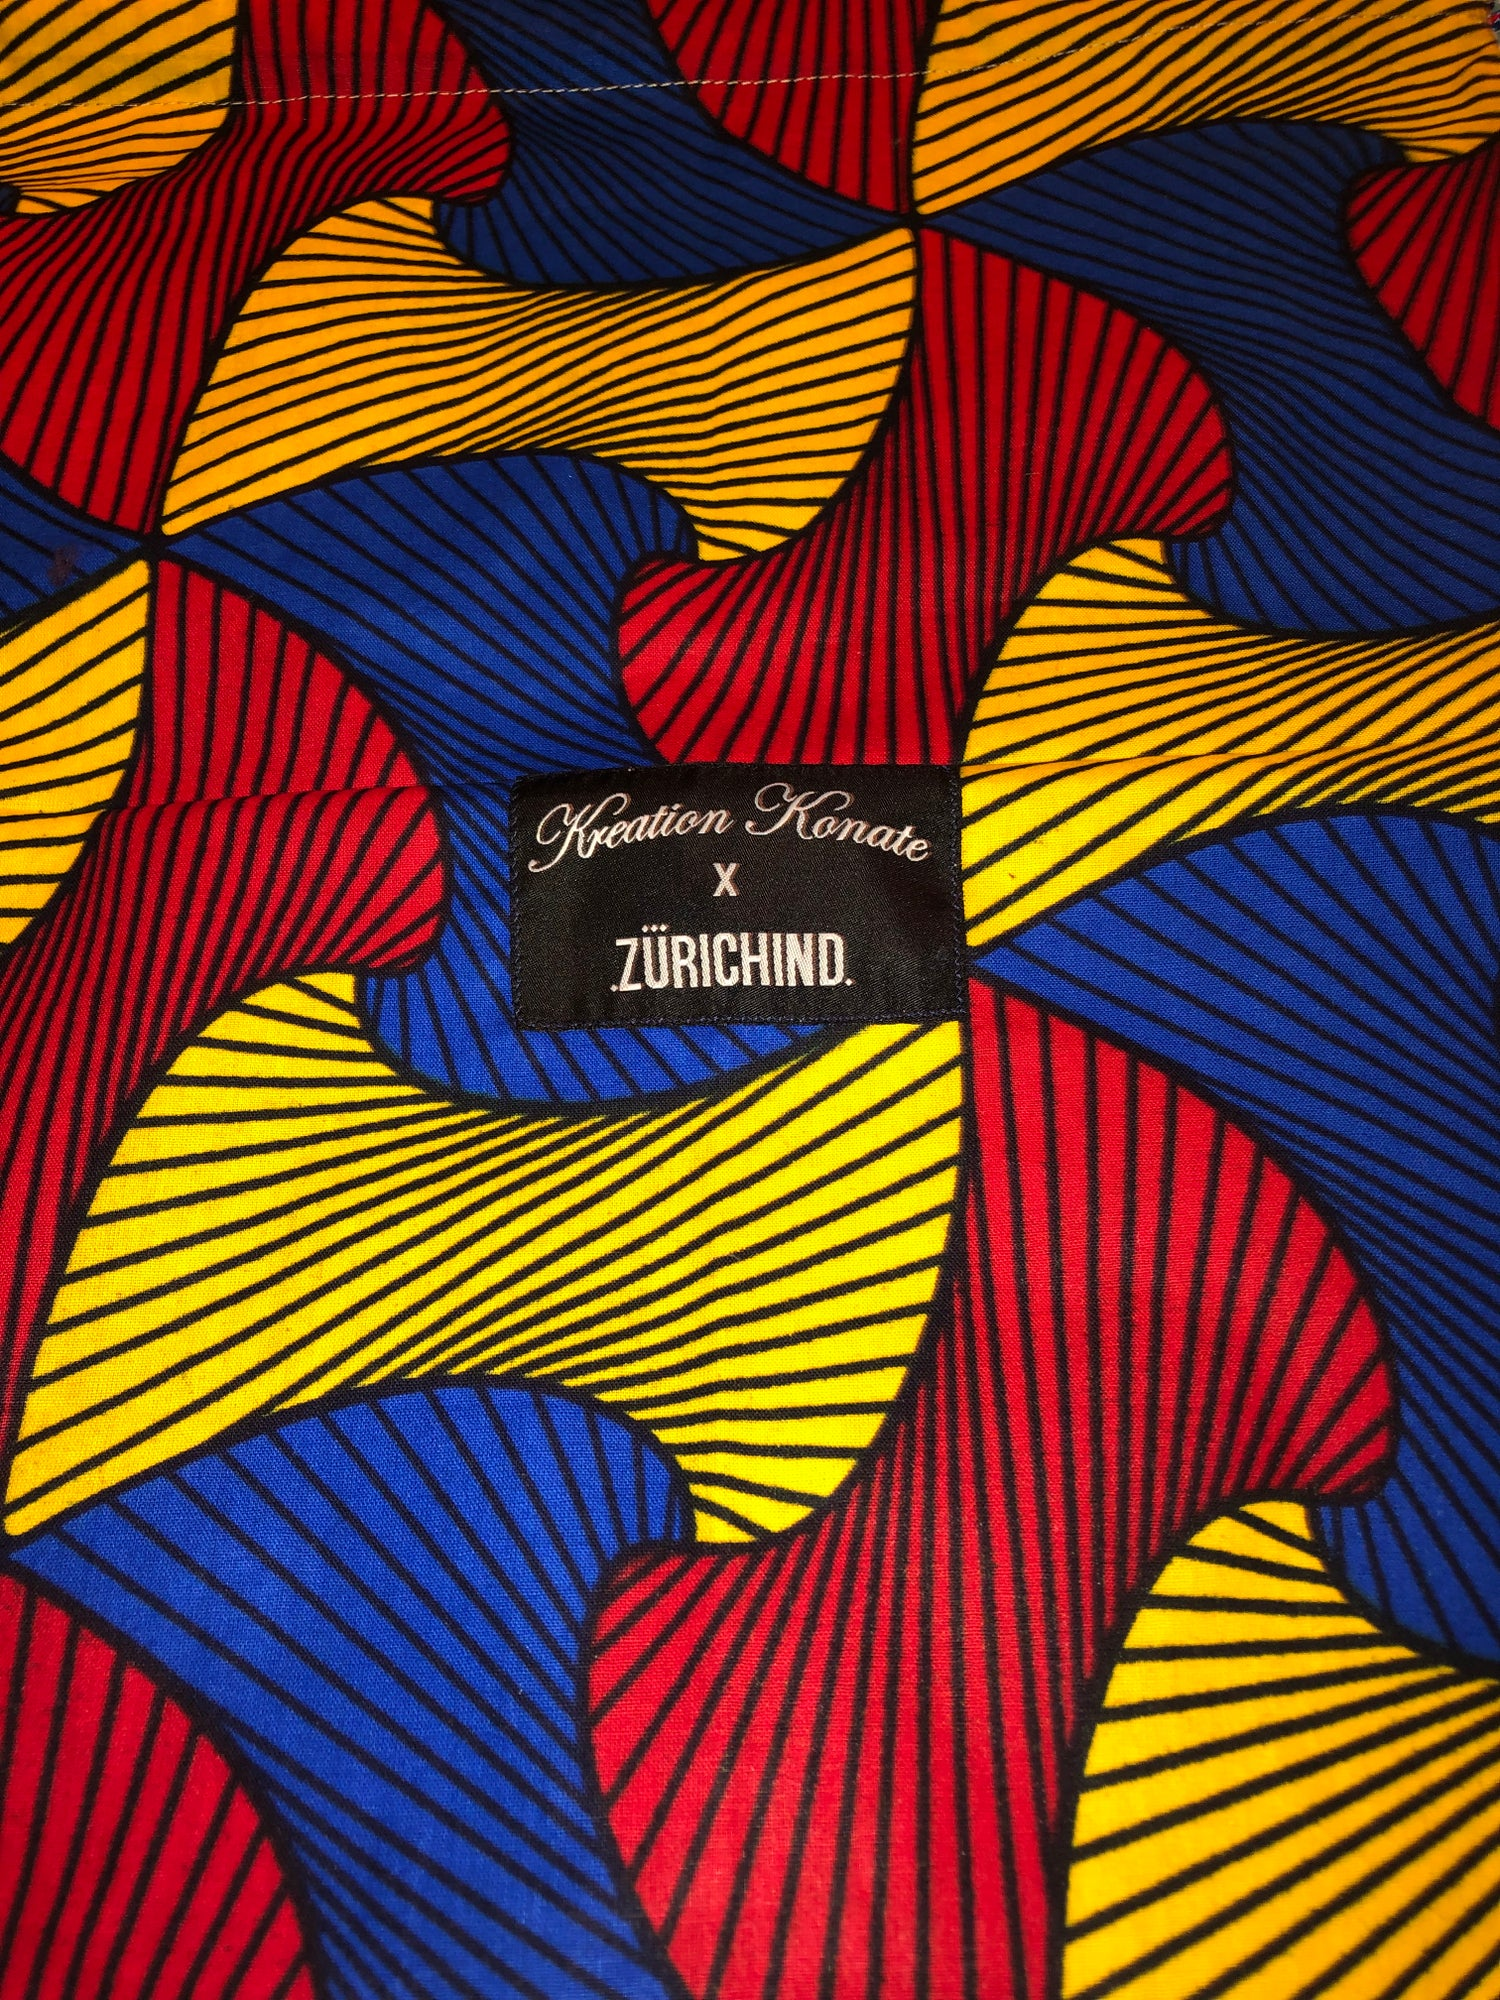 Image of ZÜRICHIND VIII x KREATION KONATE - bag